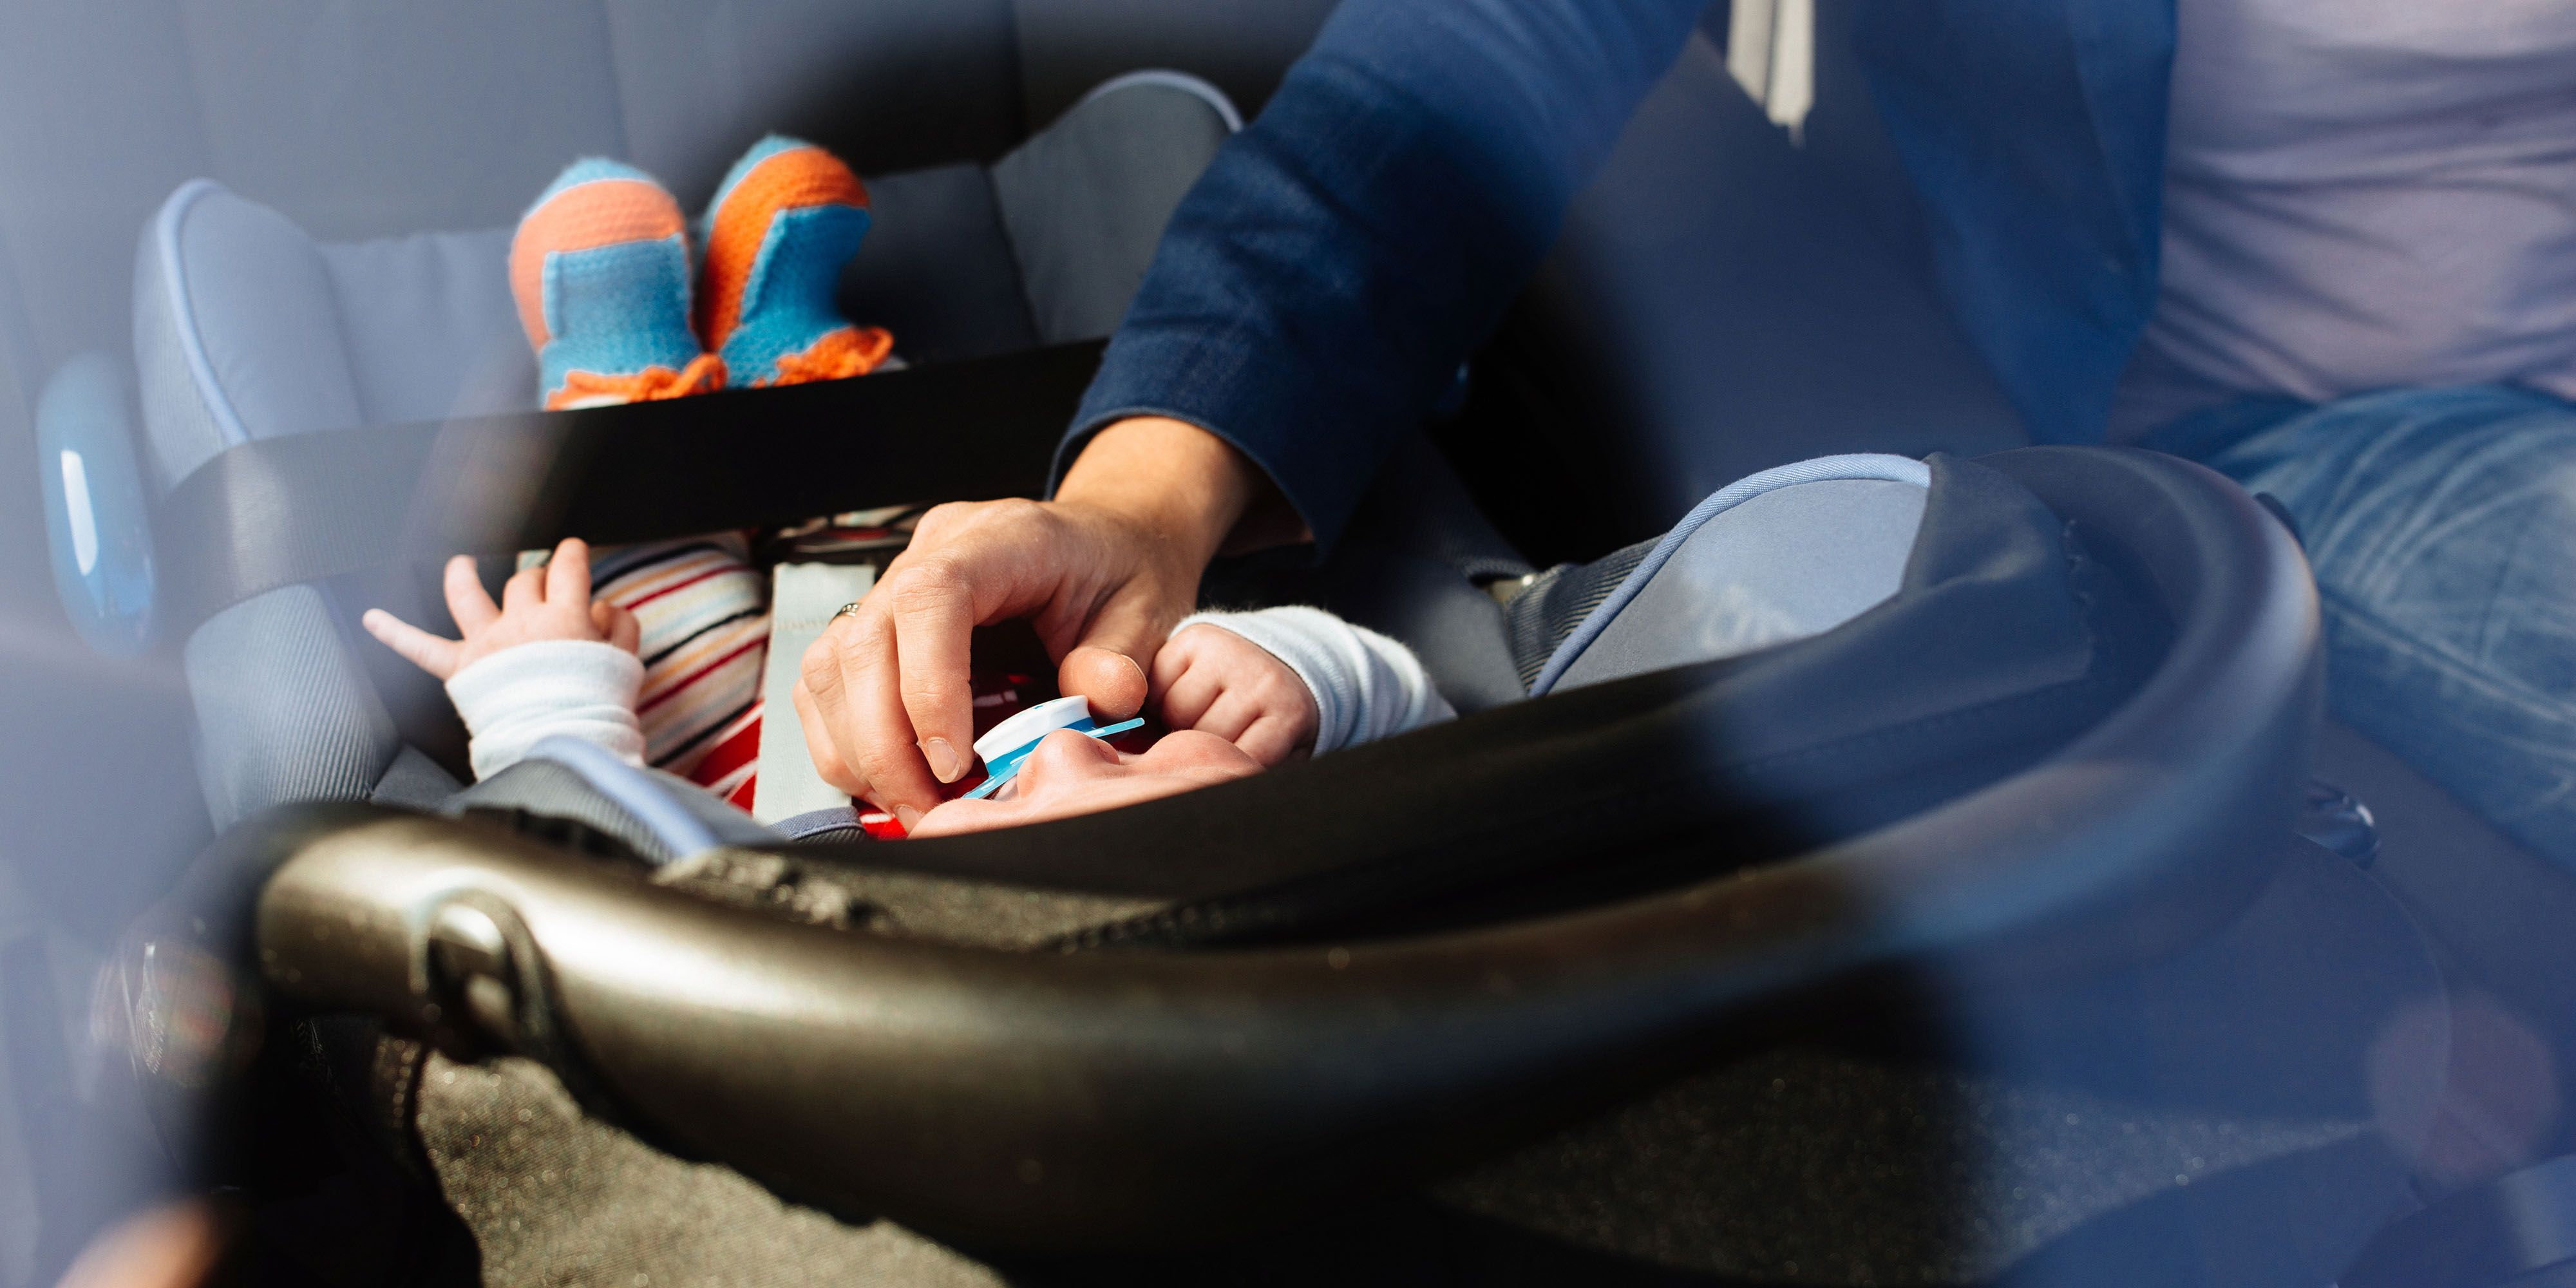 Newborn Babies Shouldn't Be in a Car Seat for More Than 30